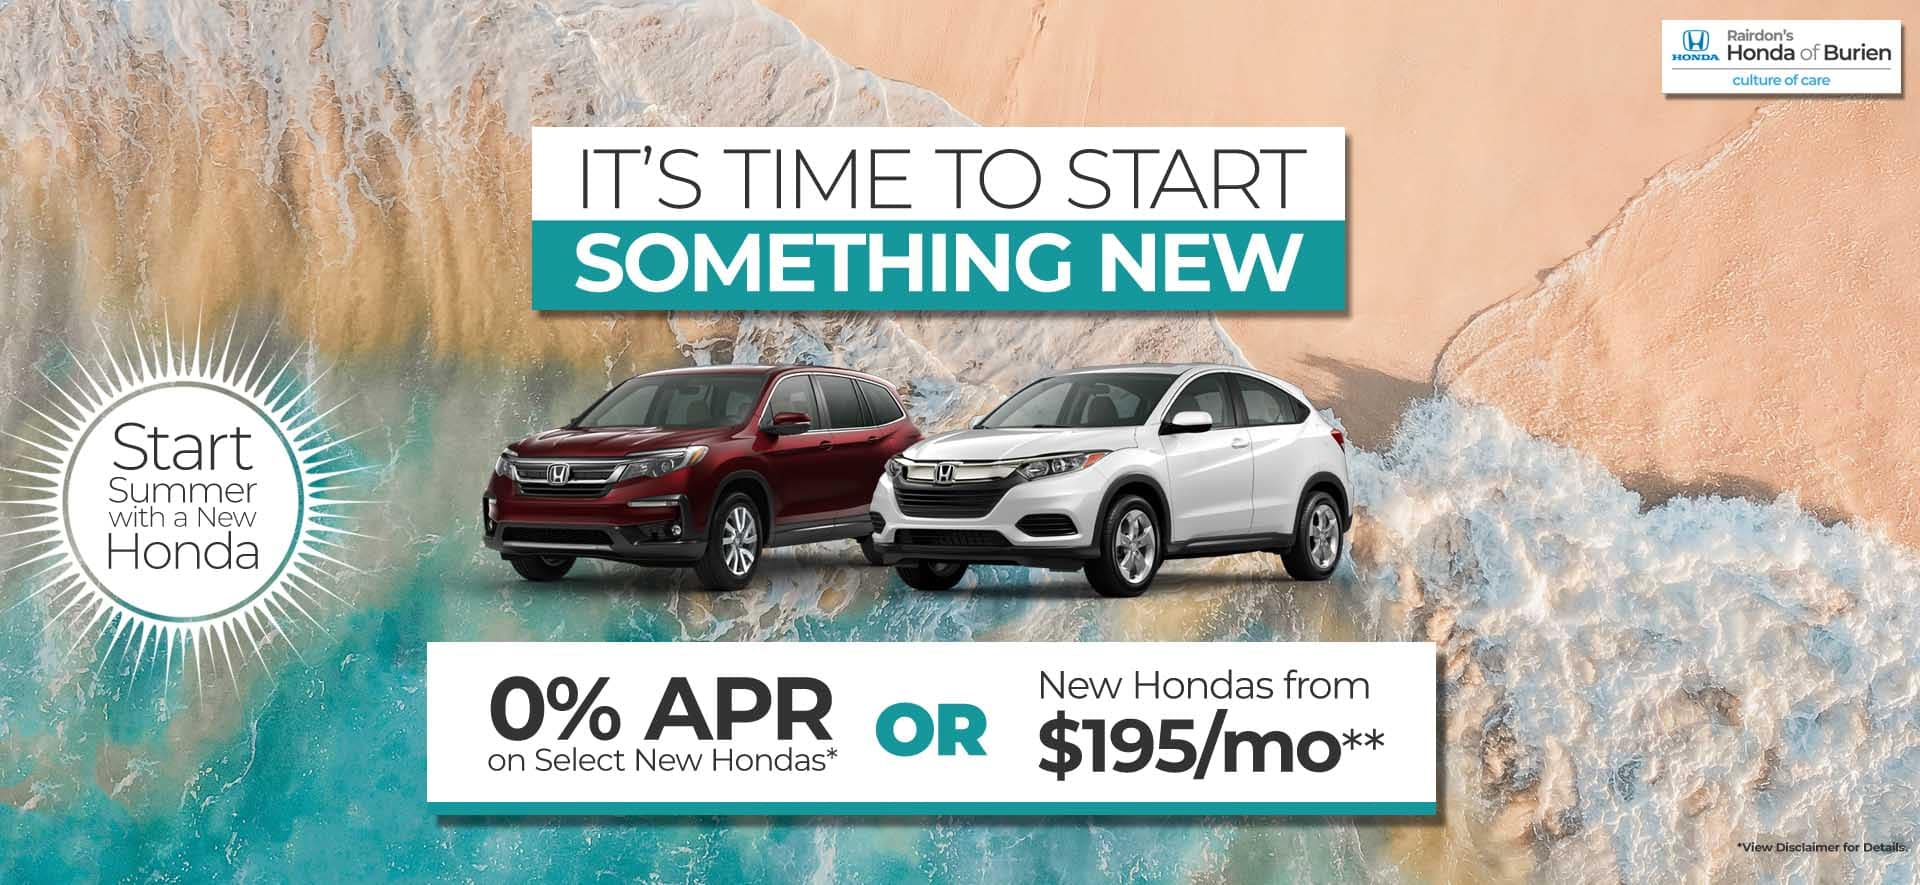 Time to Start Something New 0% APR*